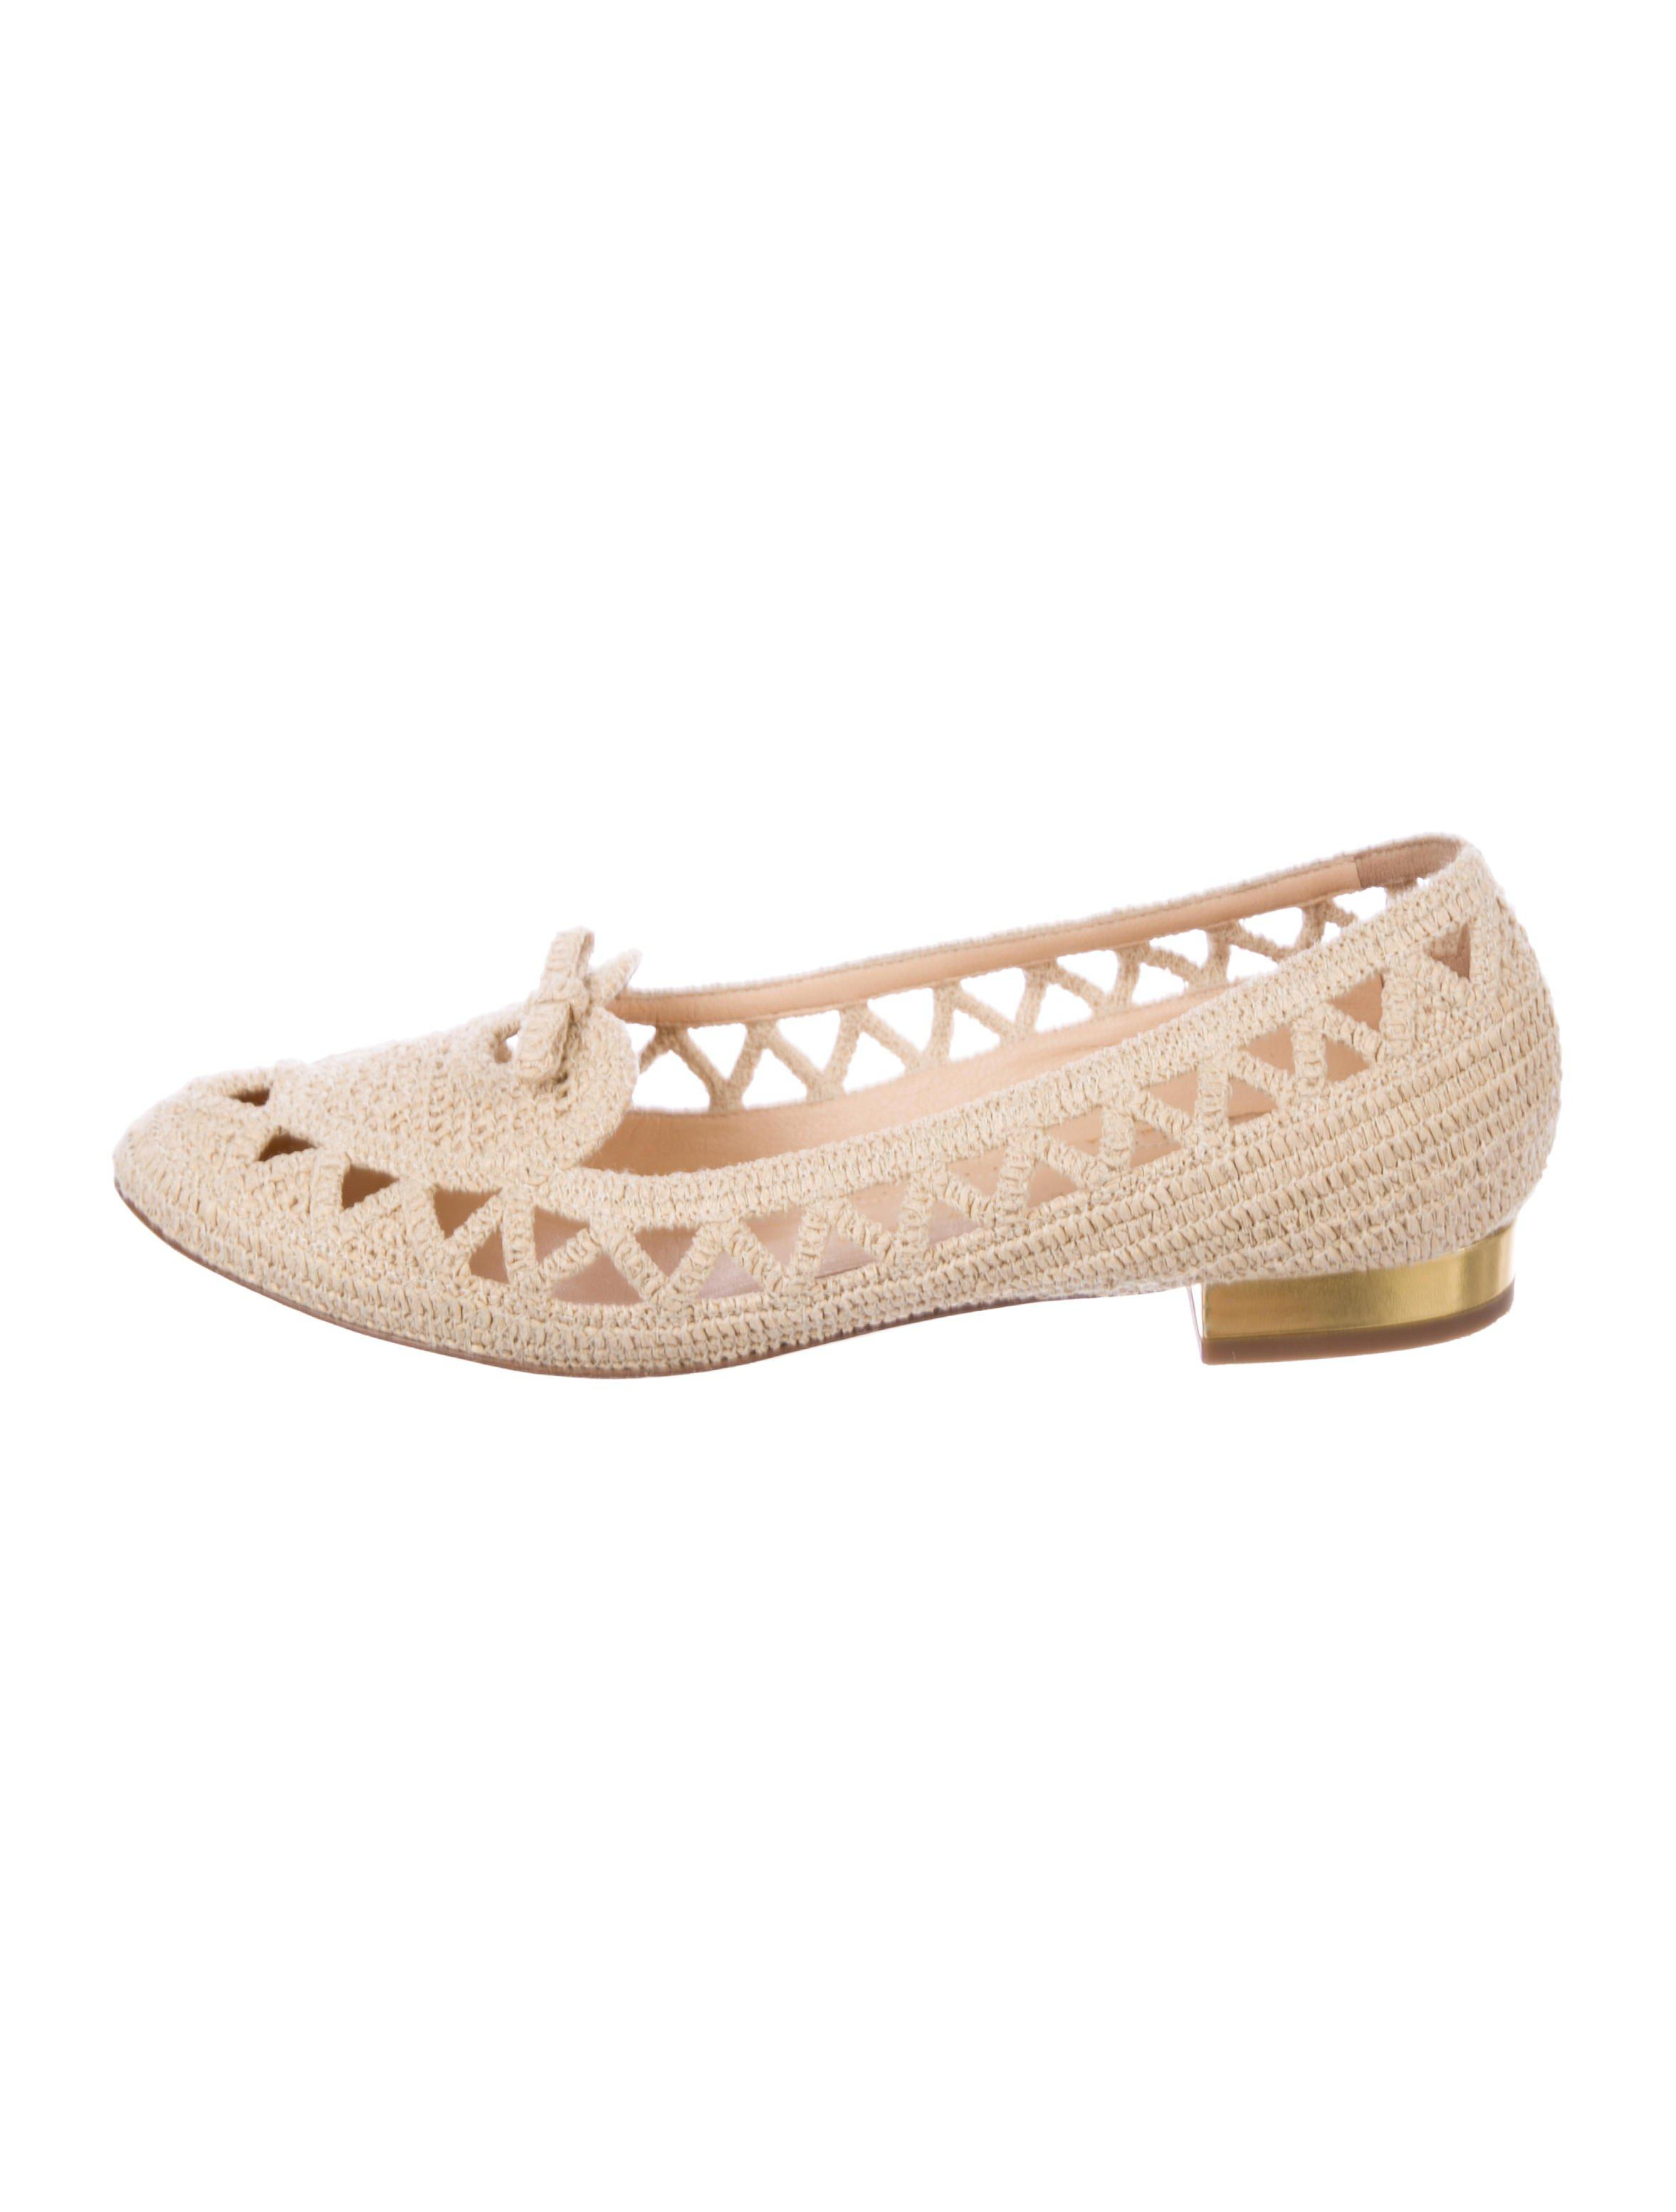 Charlotte Olympia Woven Round-Toe Loafers buy cheap largest supplier sale latest collections manchester great sale cheap online discount price 77mJcv